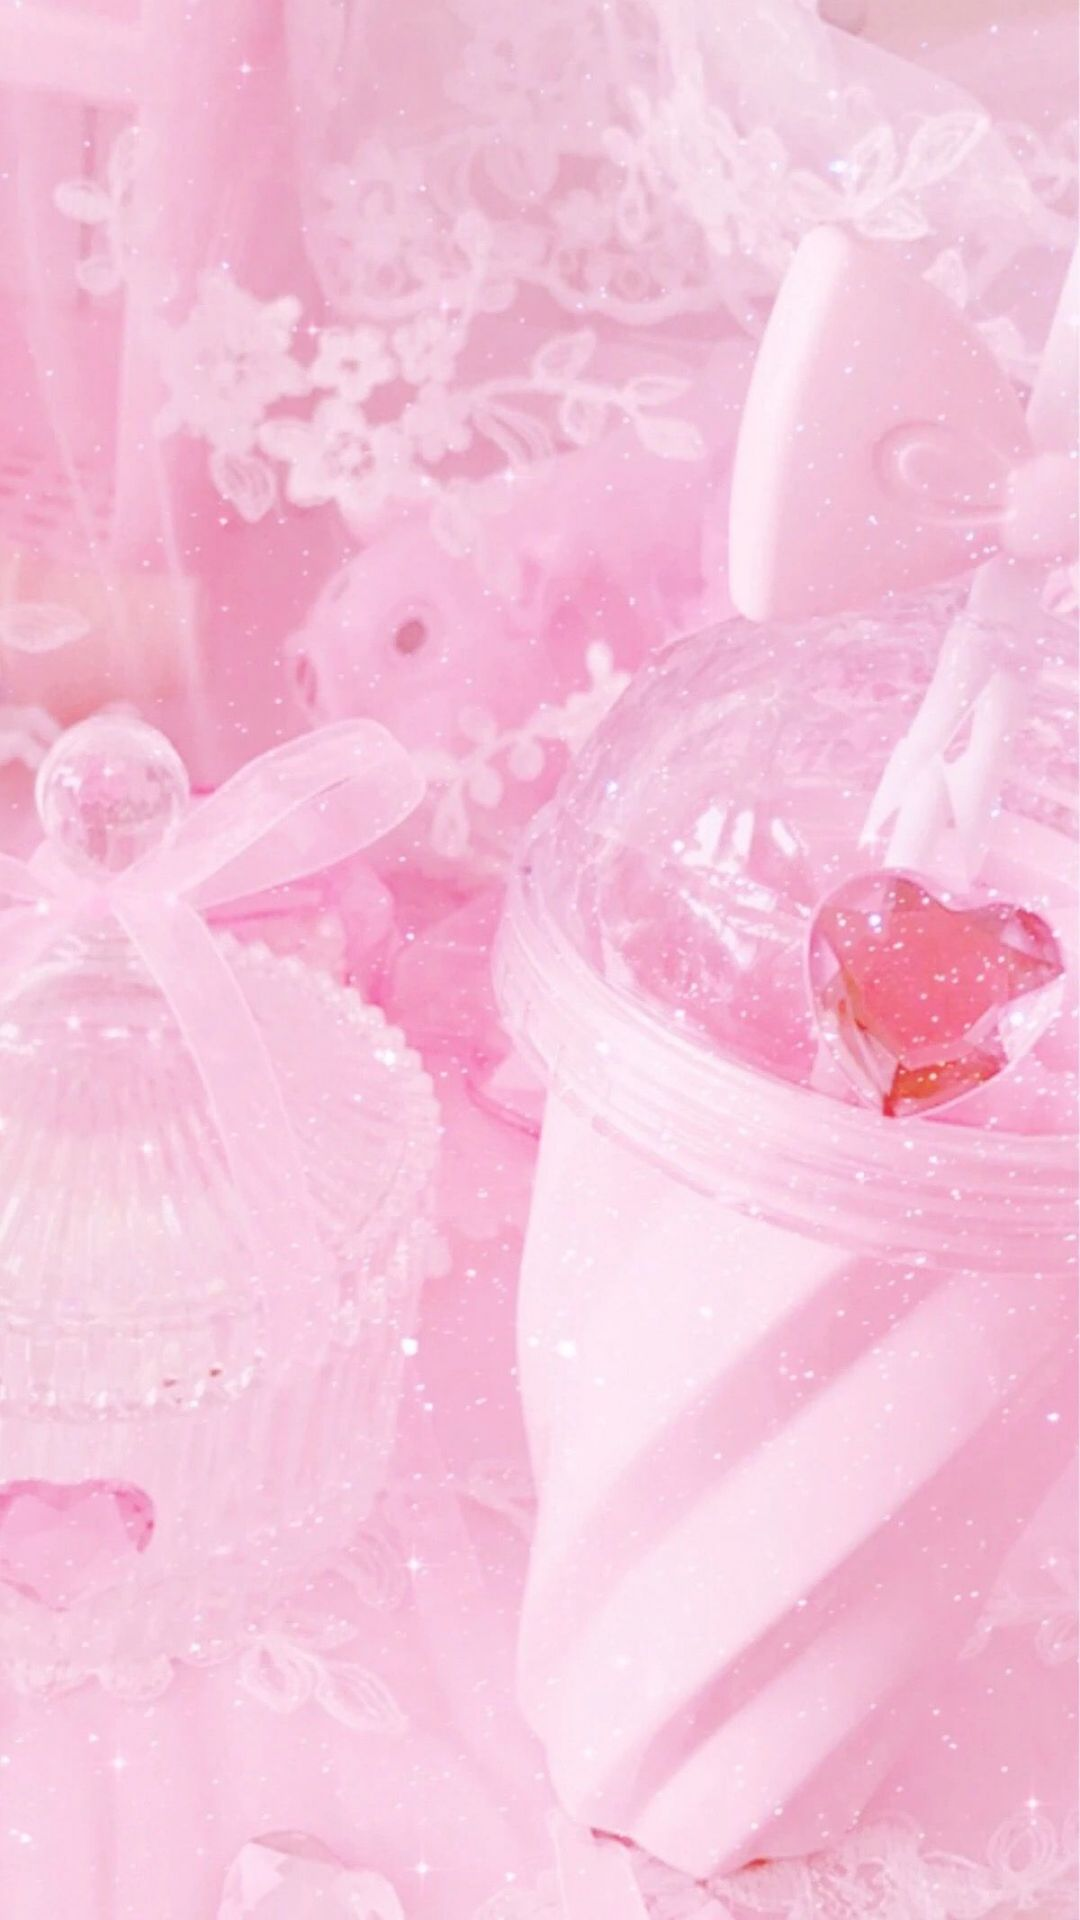 140 Aesthetic Pink Android Iphone Desktop Hd Backgrounds Wallpapers 1080p 4k 1200x2133 2020